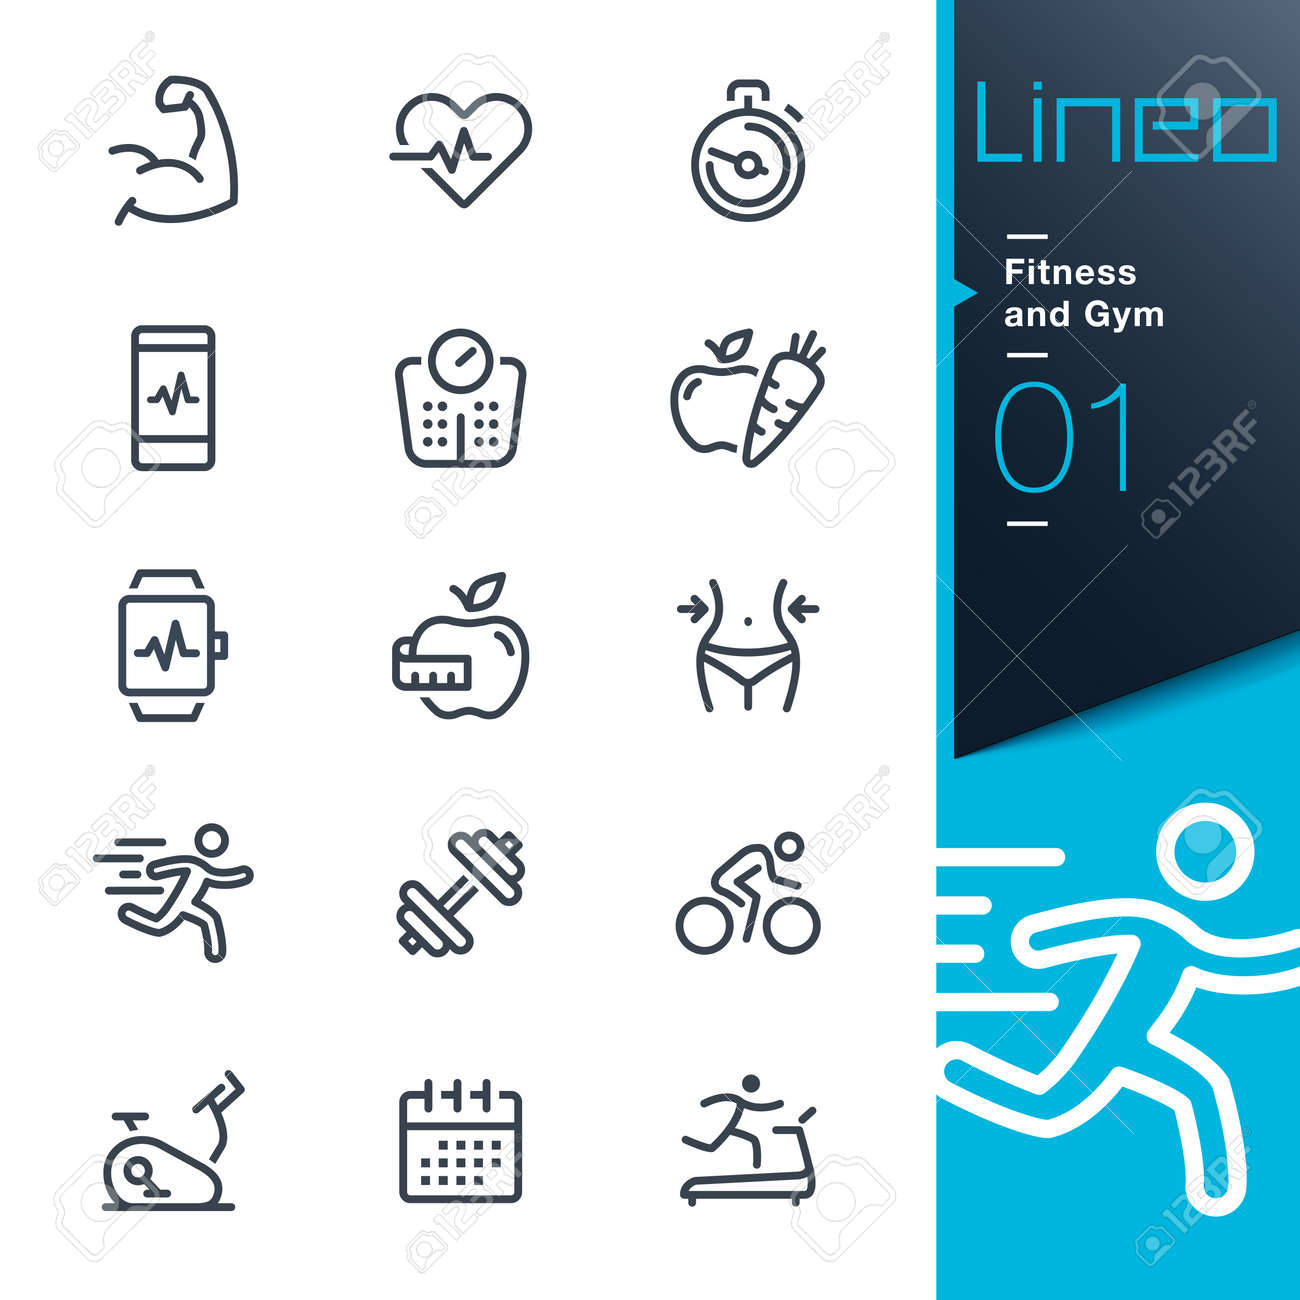 Lineo - Fitness and Gym line icons - 66532540